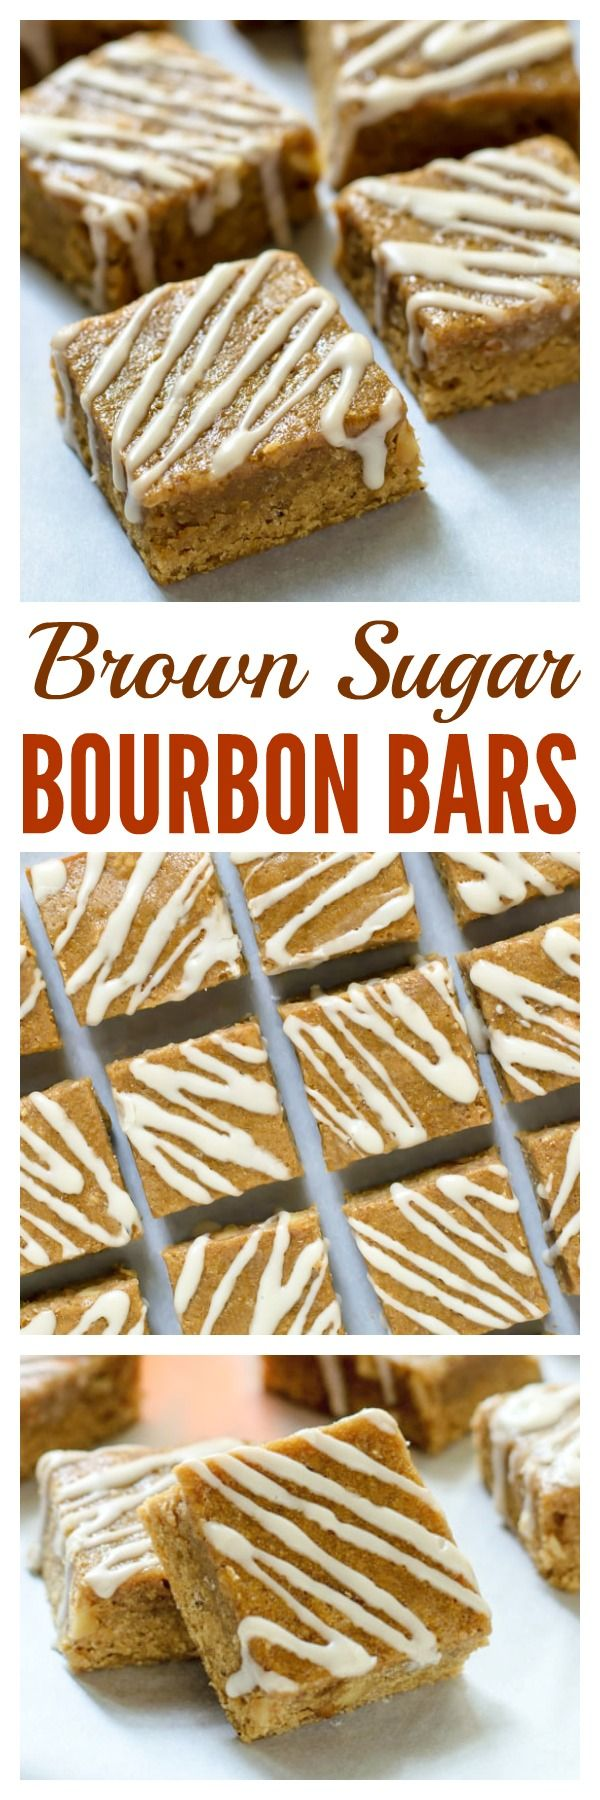 Maple Brown Sugar Bourbon Bars. If you like blondies, you will go crazy for these buttery, melt-in-your mouth bars. Shhhh. These are made with whole wheat flour, but no one will ever know!